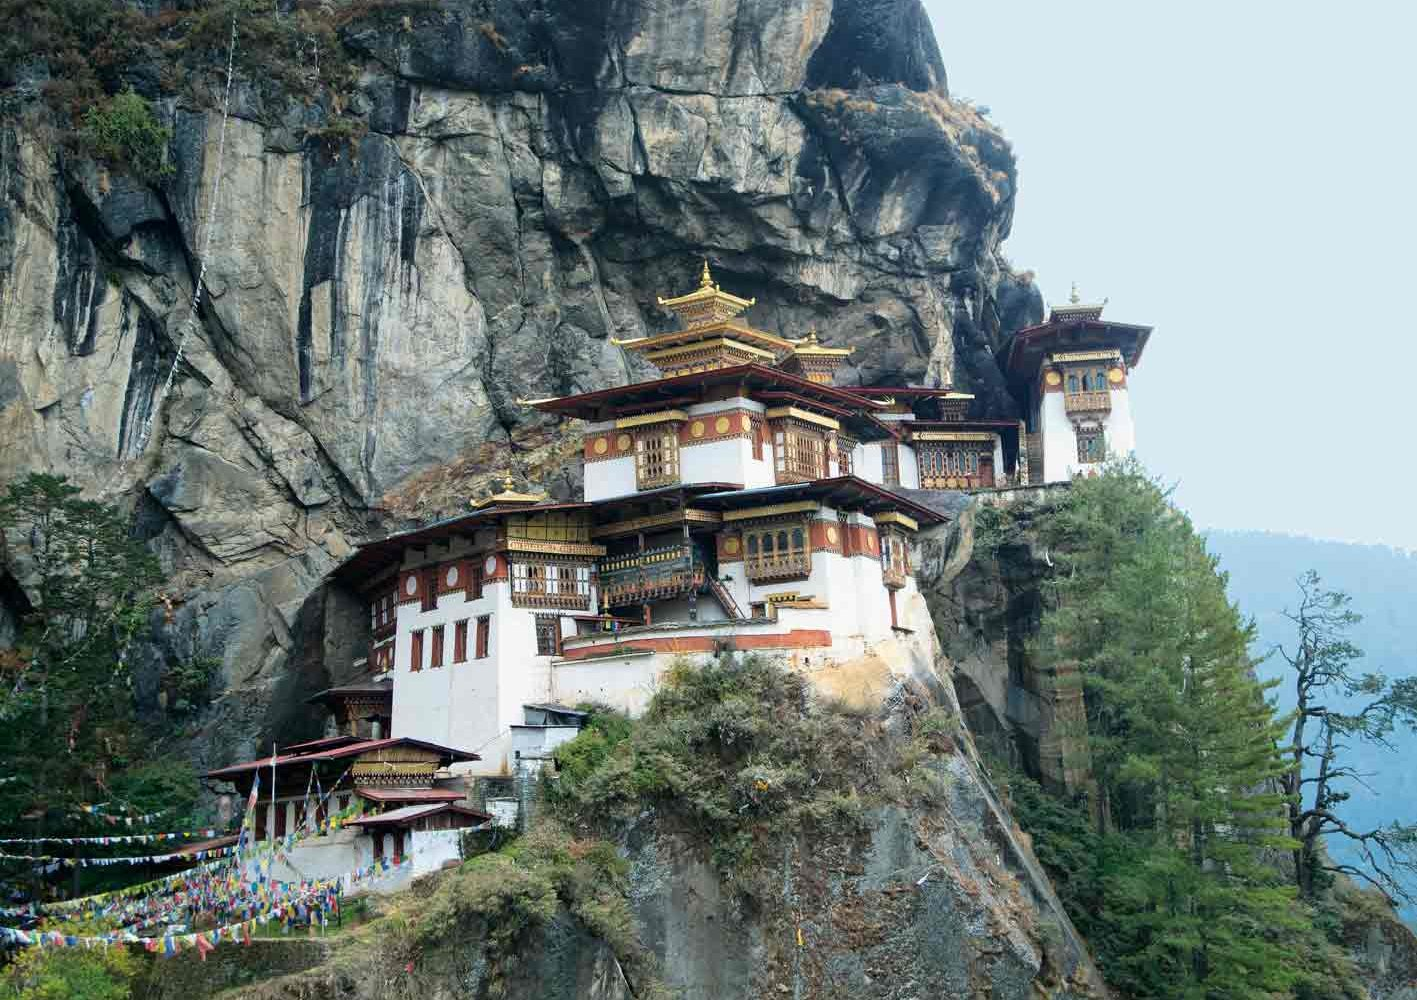 Exkursion zum Kloster Taktsang (Tigernest), Bhutan